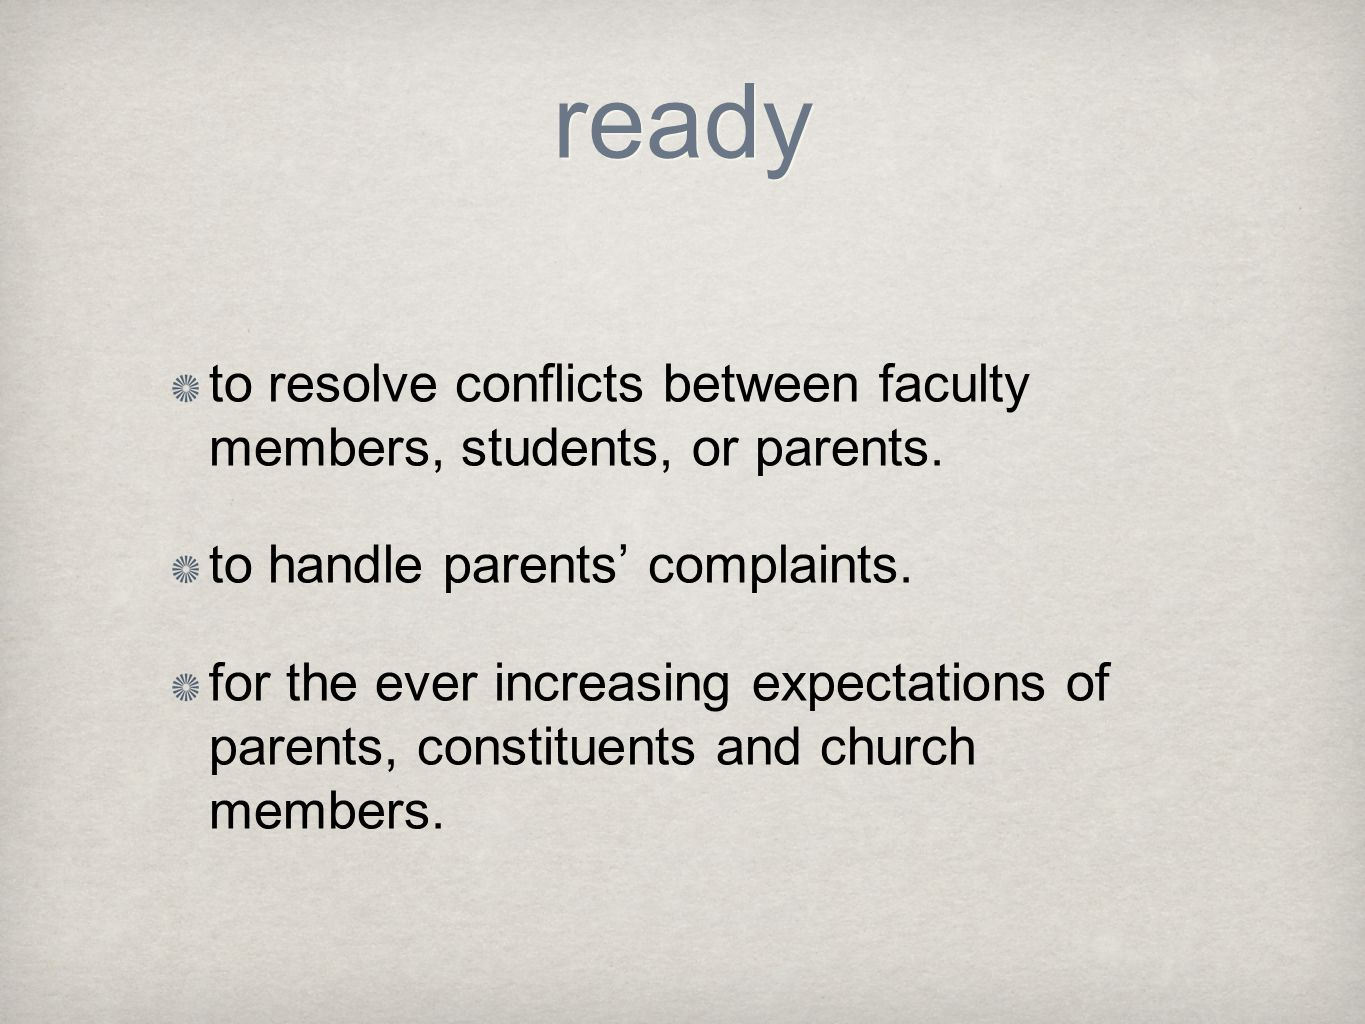 ready to resolve conflicts between faculty members, students, or parents. to handle parents' complaints.